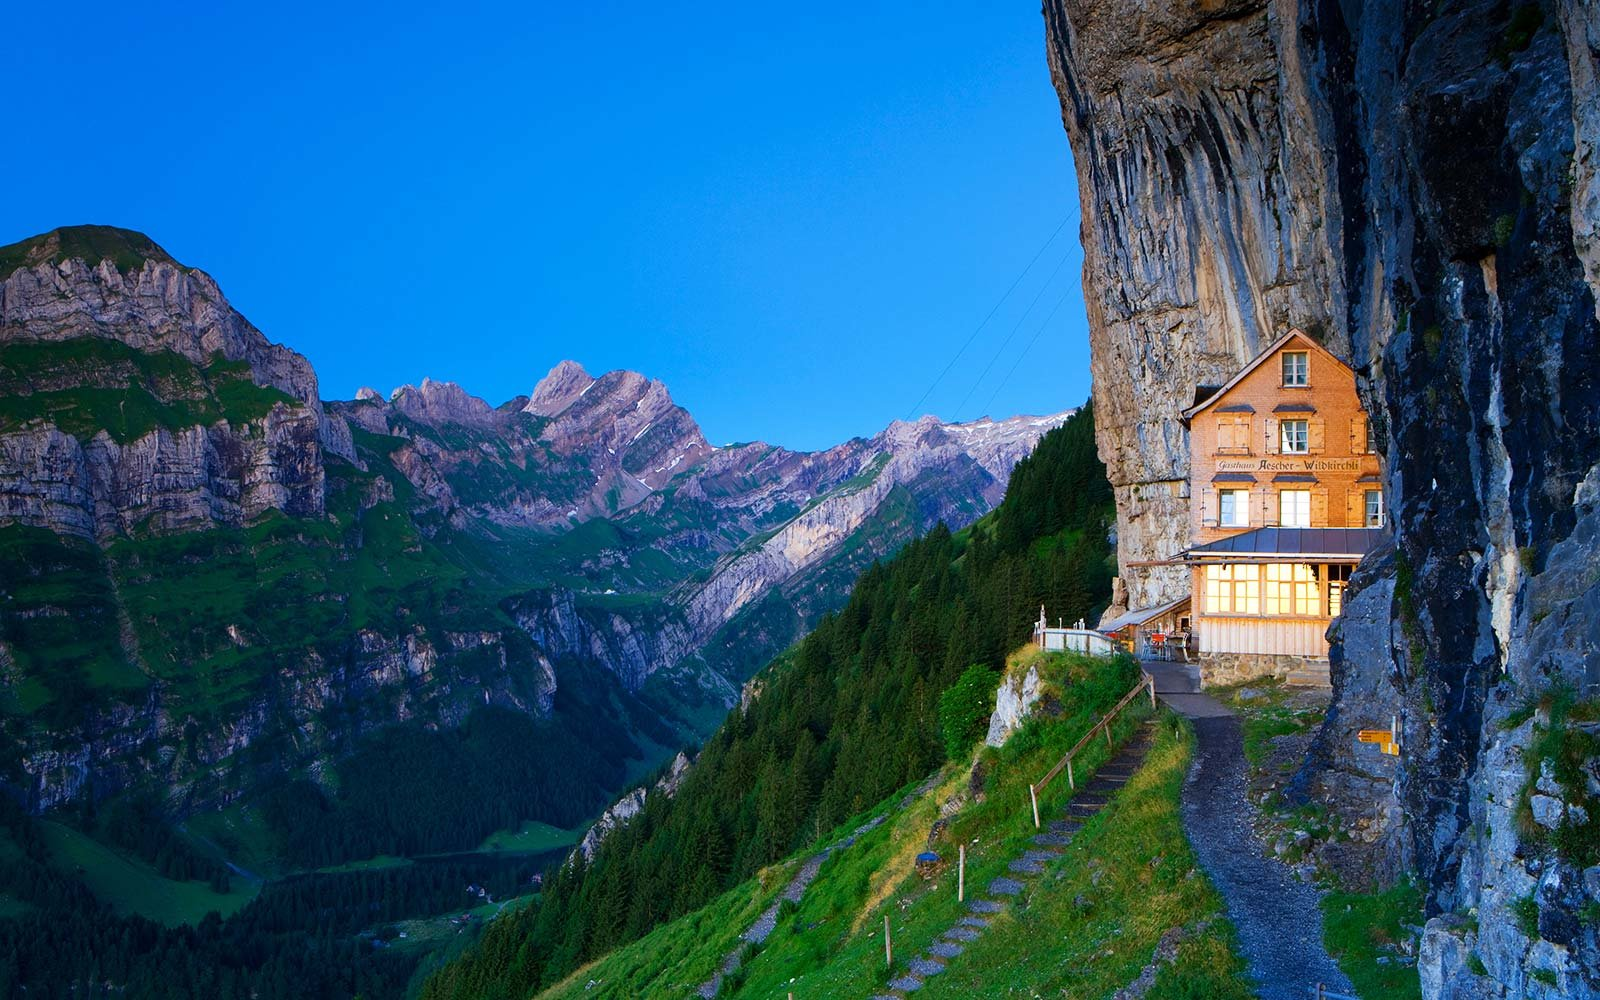 aescher guesthouse hotel restaurant swiss alps cliff adventure switzerland